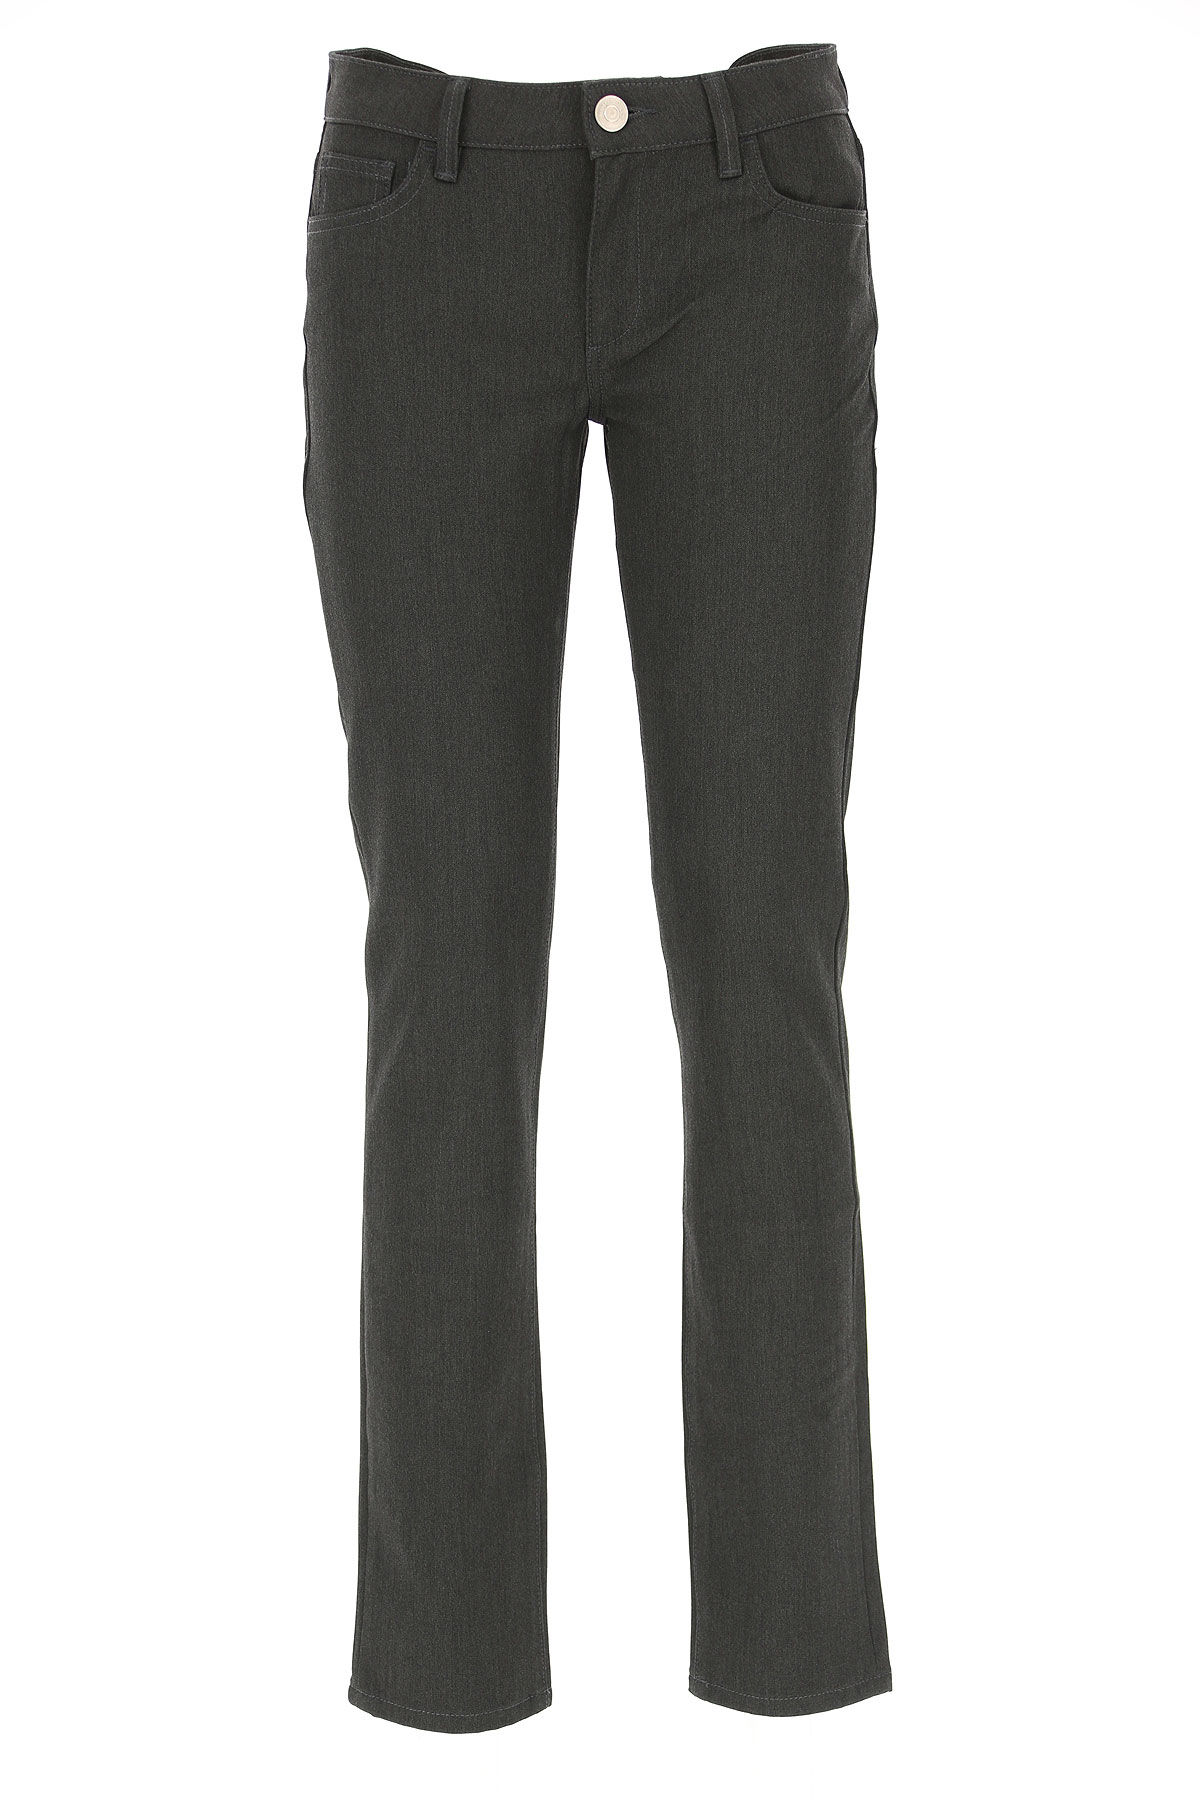 Trussardi Pants for Women On Sale in Outlet, Grey, polyester, 2019, 28 32